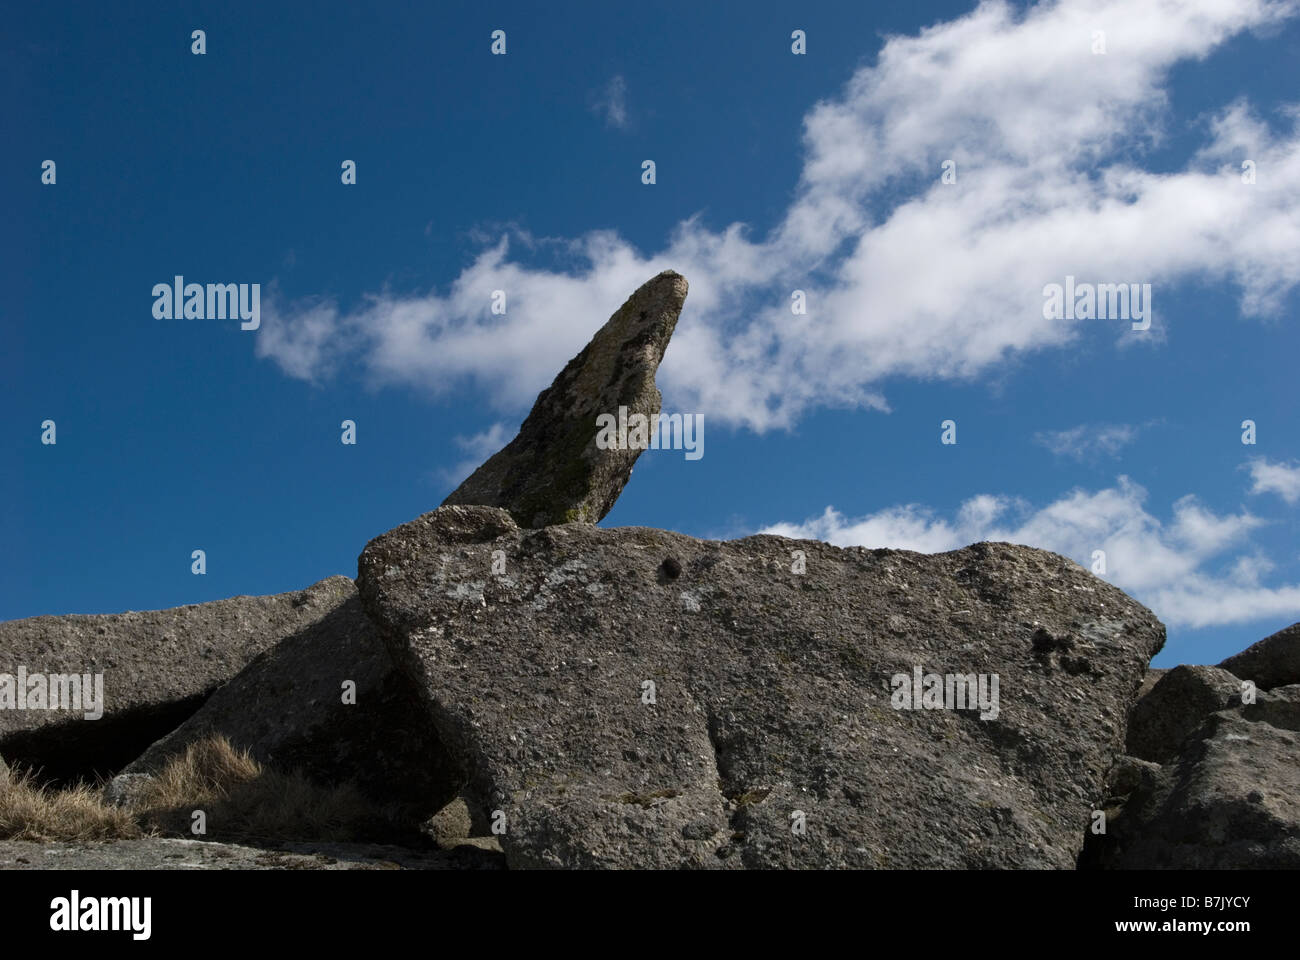 Piece of granite pointing to a blue sky with white clouds - Stock Image